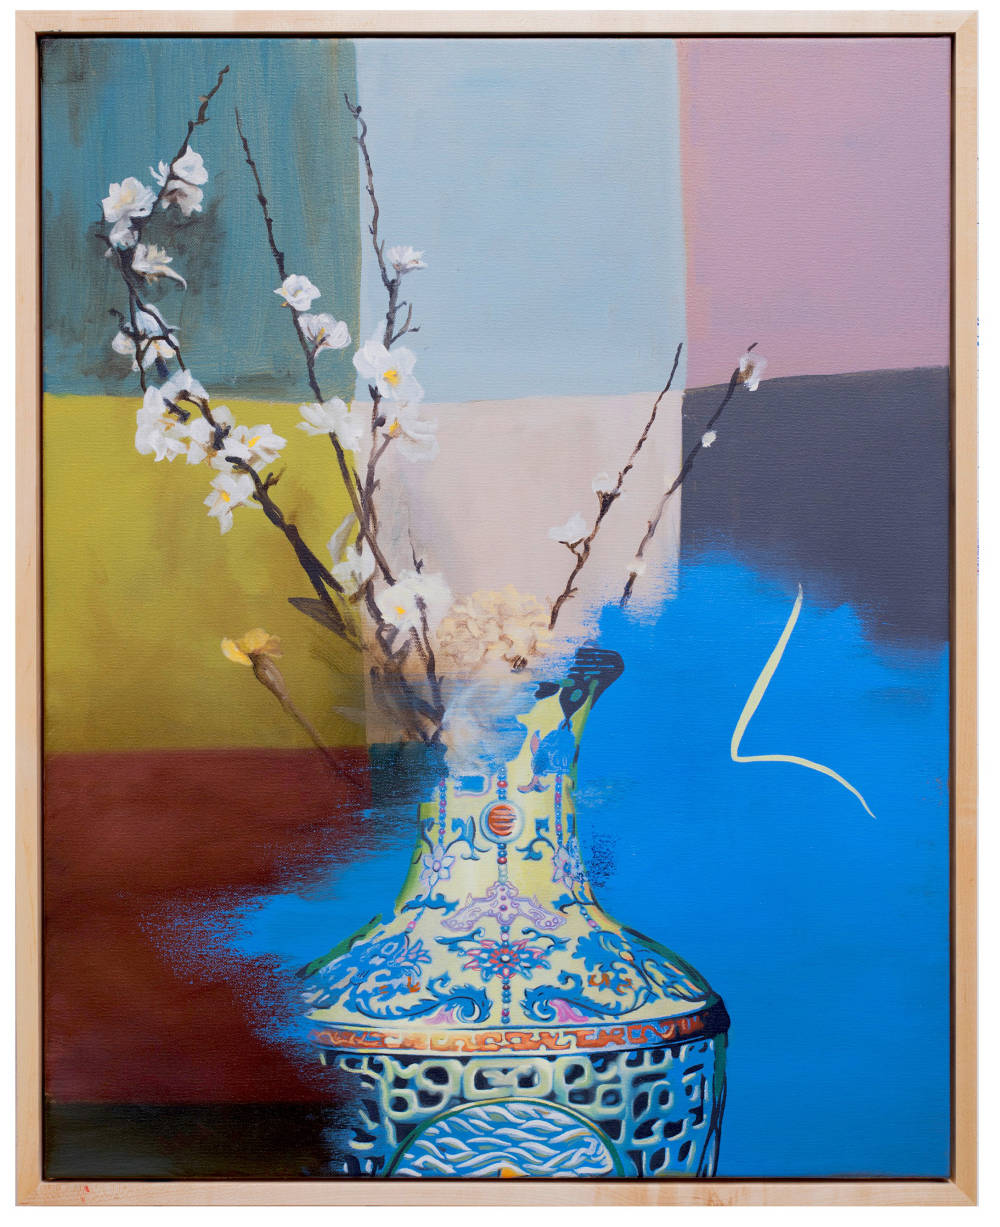 Keith Tyson, Still Life with Qianlong Vase, 2018. Oil on canvas 78.5 x 63 cm / 30 7/8 x 24 3/4 in (framed) © Keith Tyson. Courtesy of the artist and Hauser & Wirth